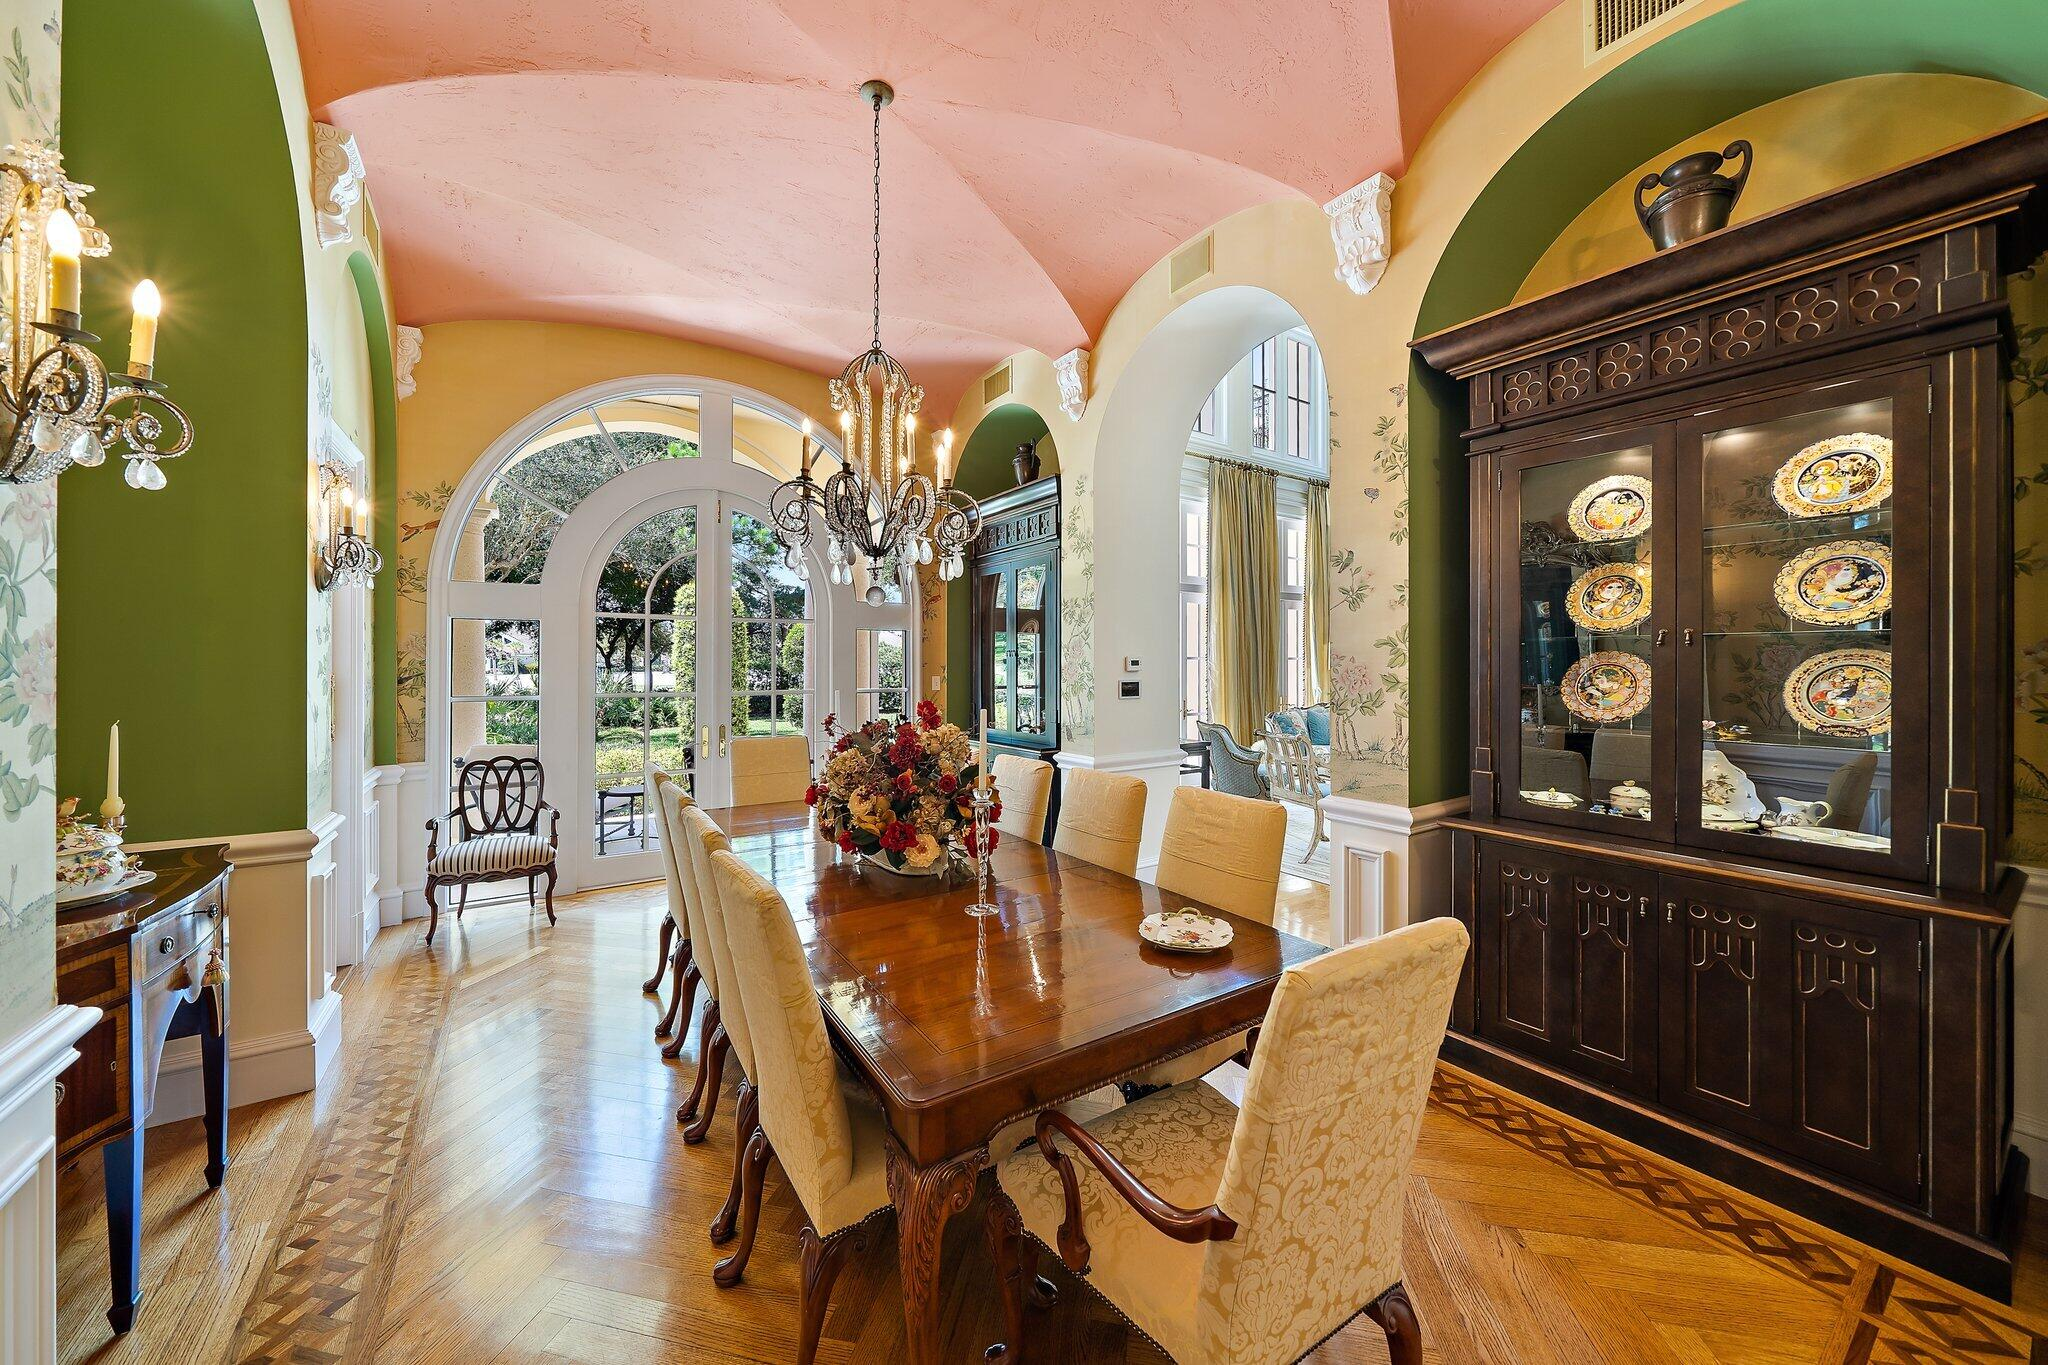 dining room w/ baker table